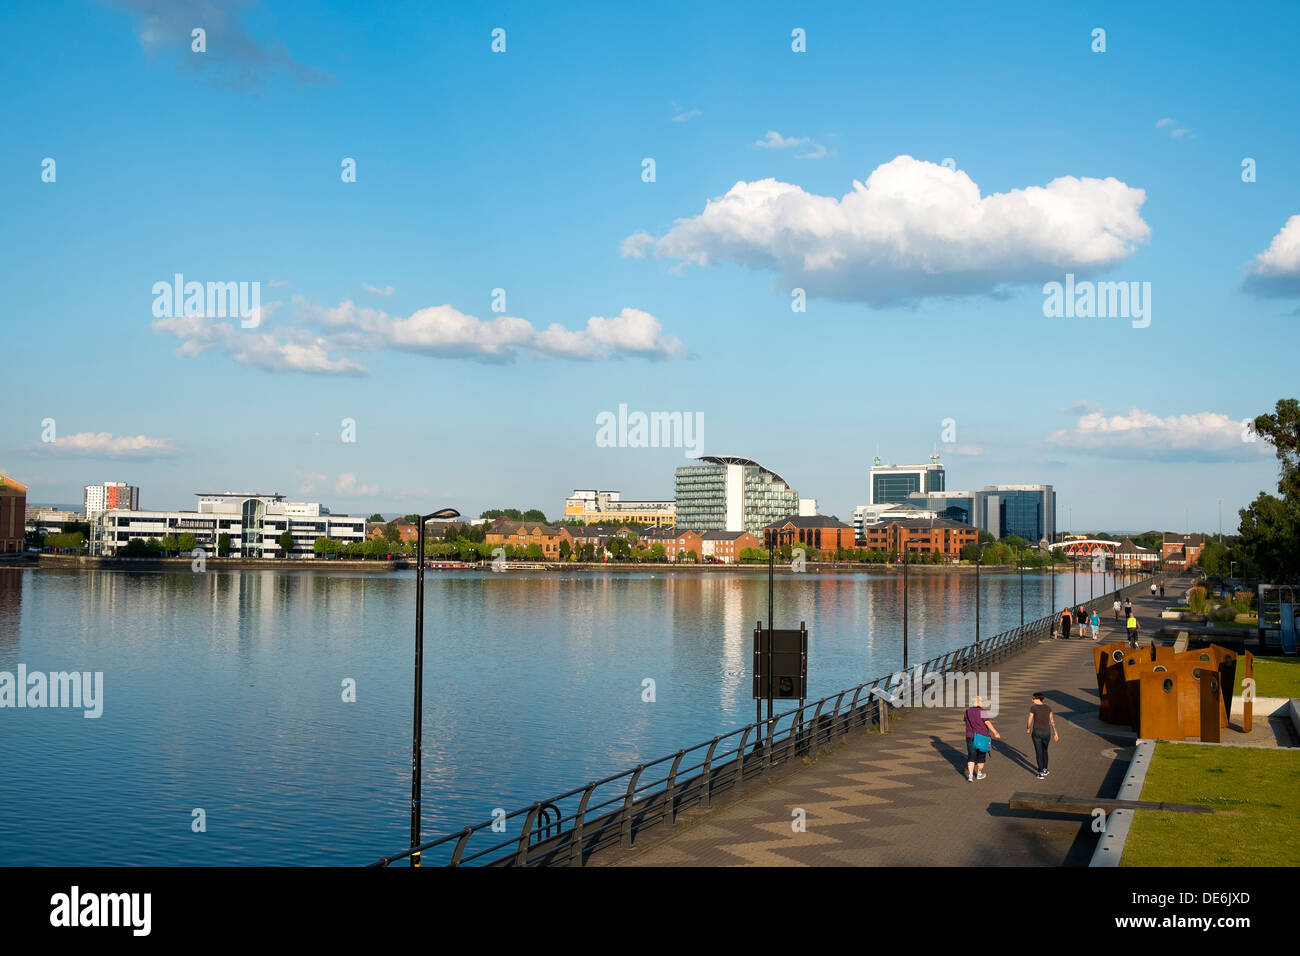 England, Greater Manchester, Salford quays - Stock Image